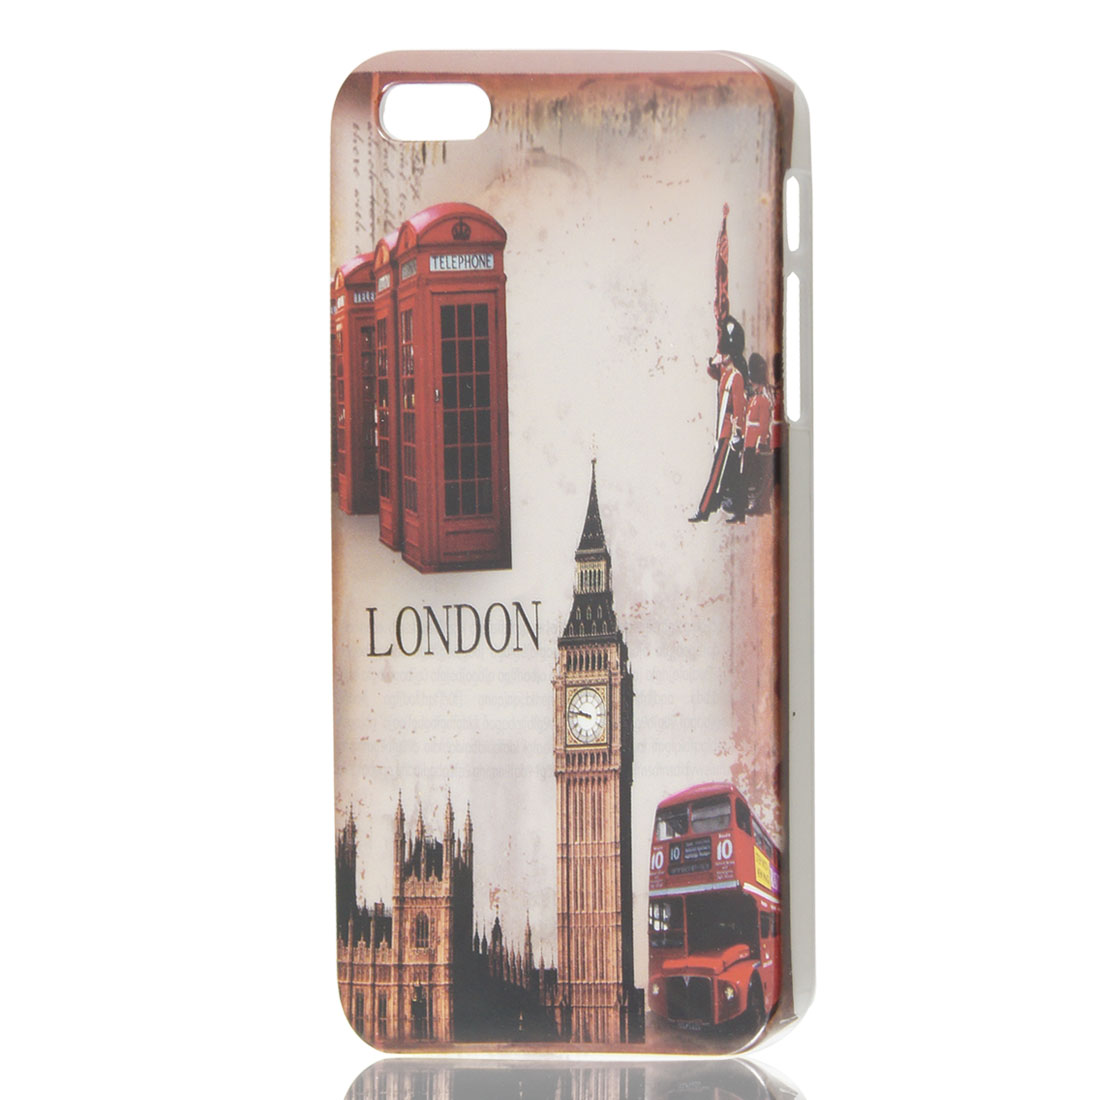 Vintage Style London Big Ben Tower Pattern Hard Case Cover Skin for iPhone 5 5G